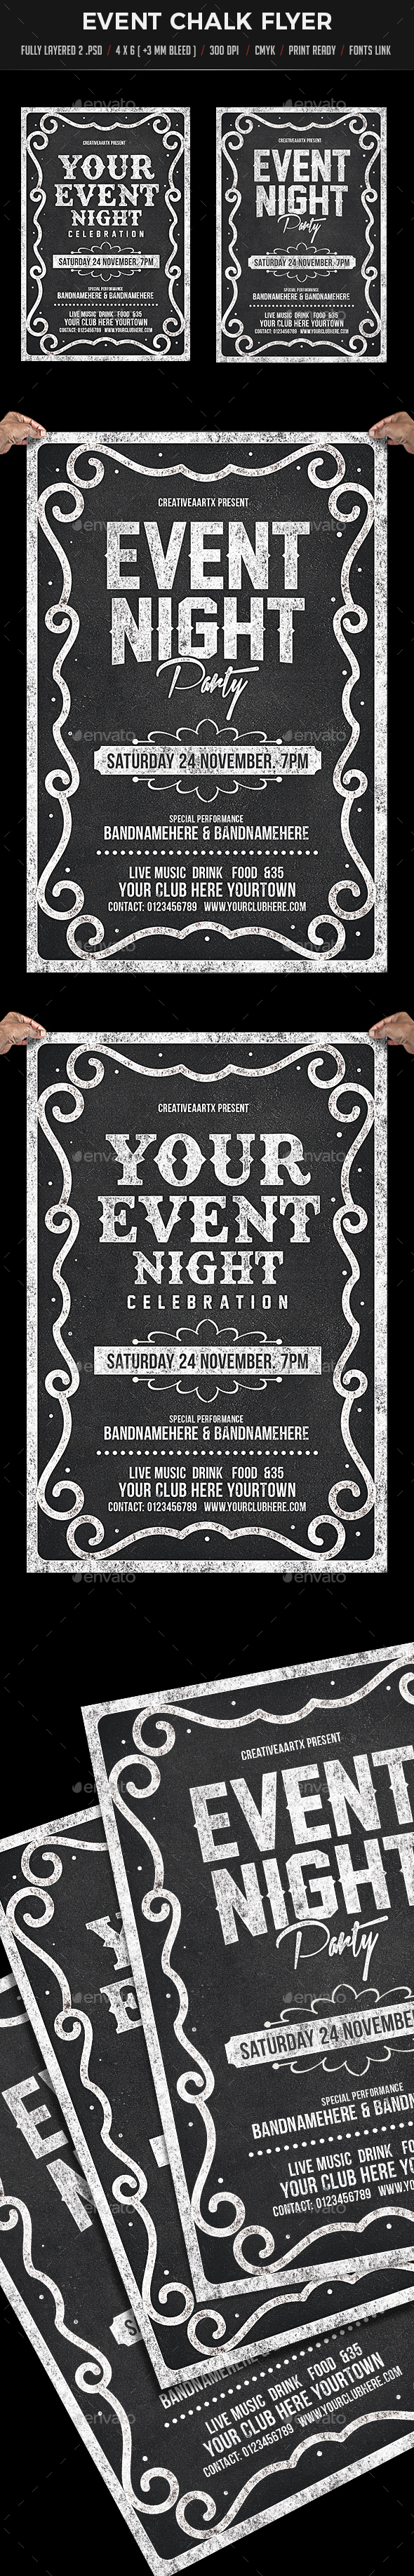 Event Chalk Flyer - Flyers Print Templates